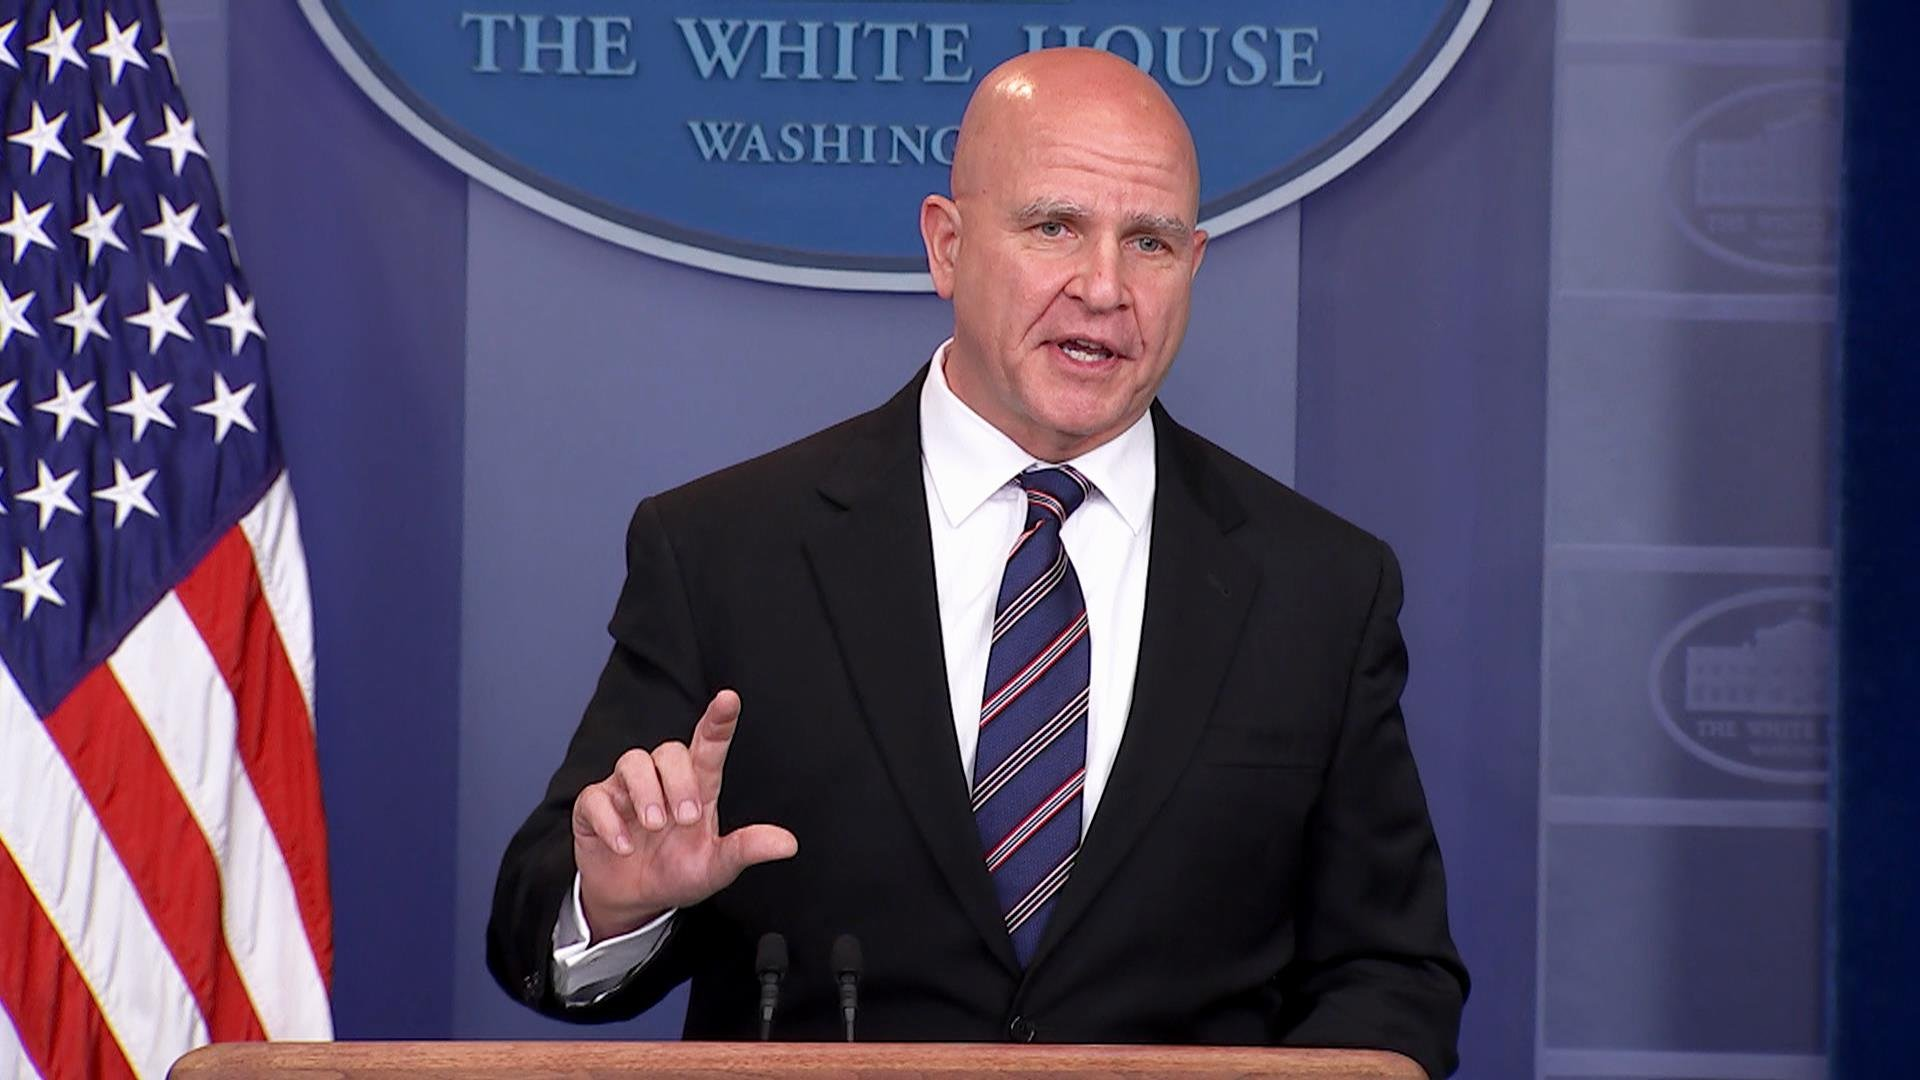 McMaster could leave the White House by the end of the month